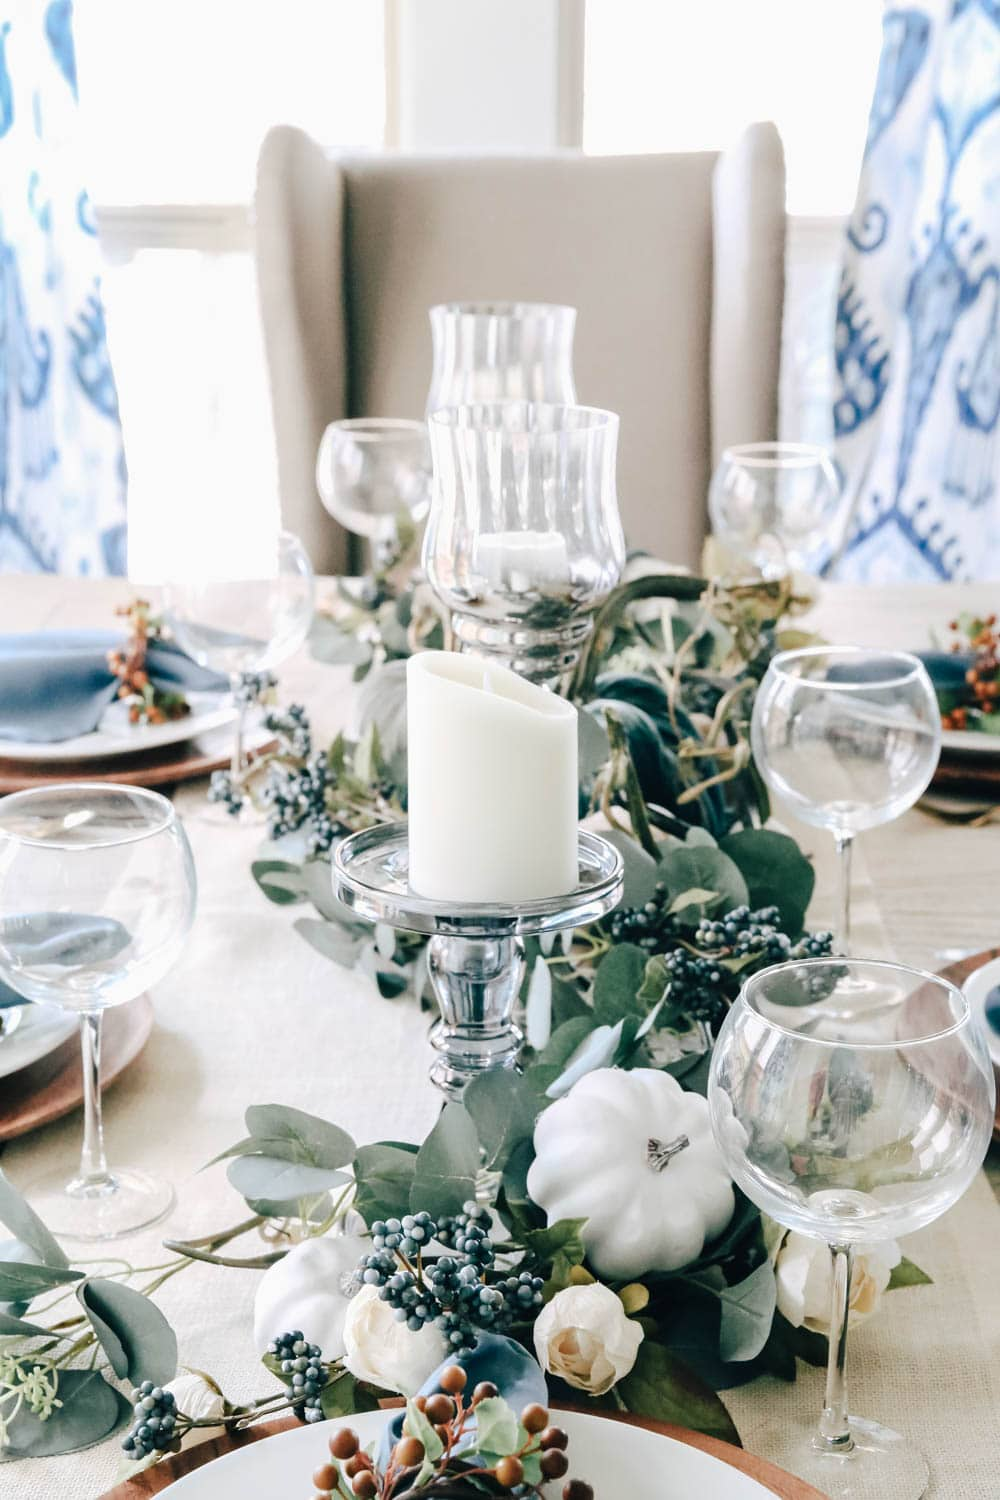 Harvest Fall table decor idea with shades of blue pumpkins. #falldecorating #fallinspiration #thanksgiving